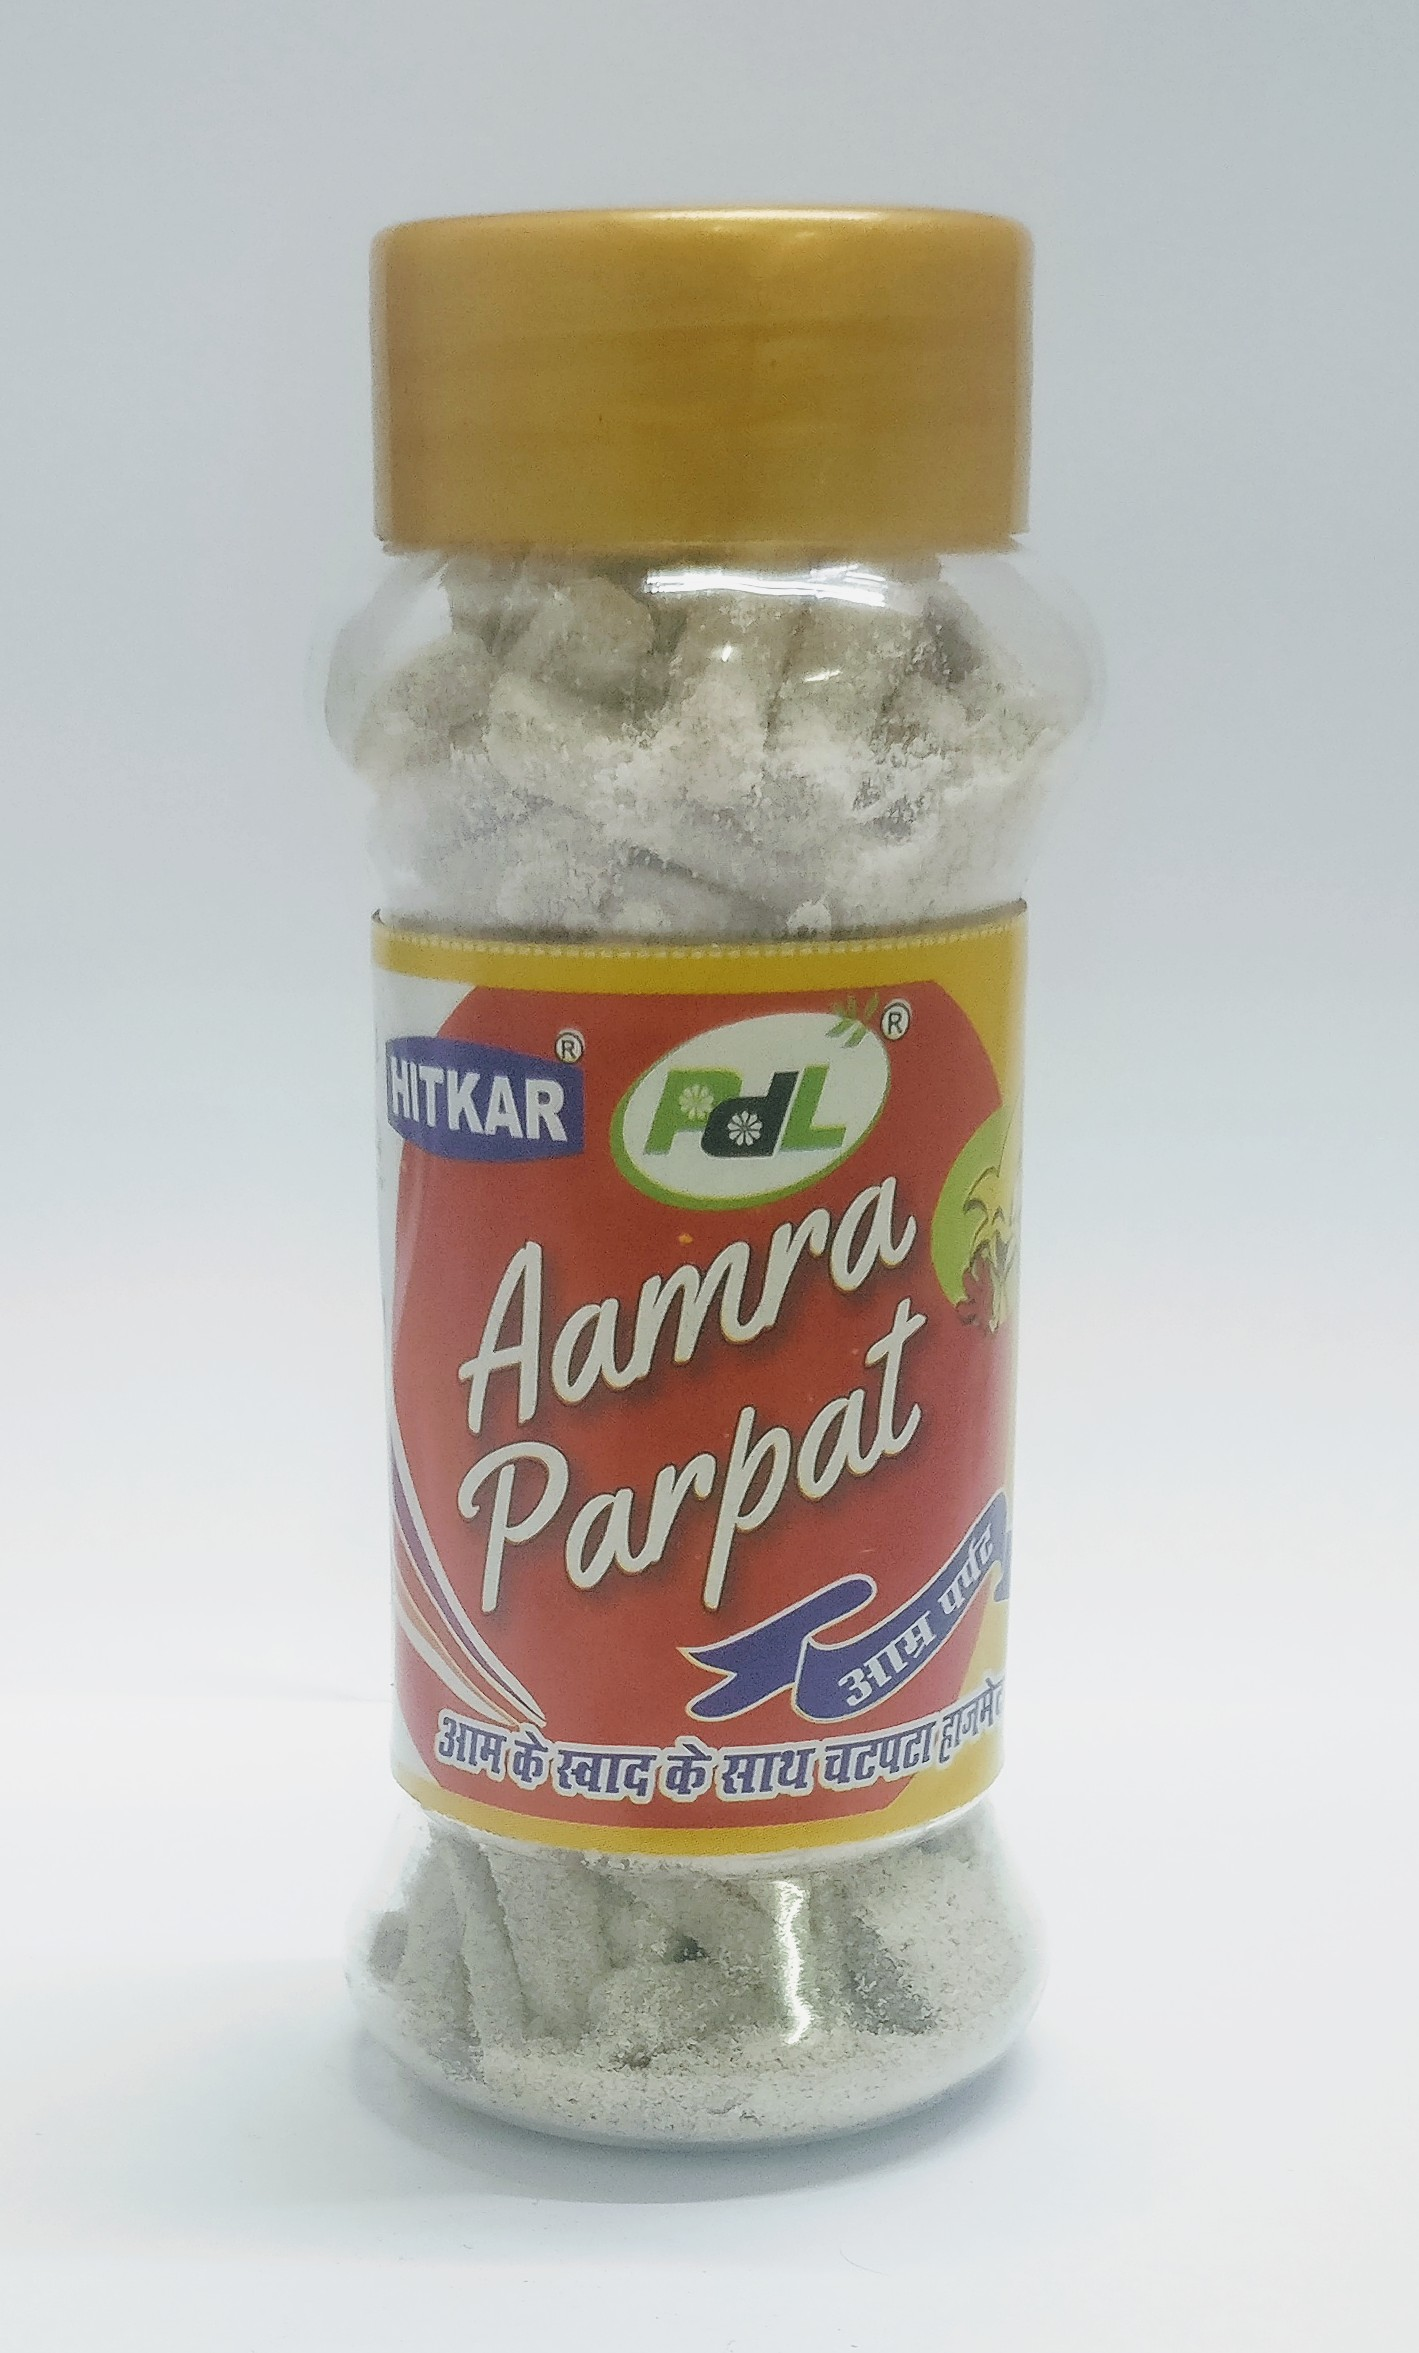 Online Shopping India, Ayurvedic Churan Goli, Aamraparpat Bottle, PdL Hitkar,